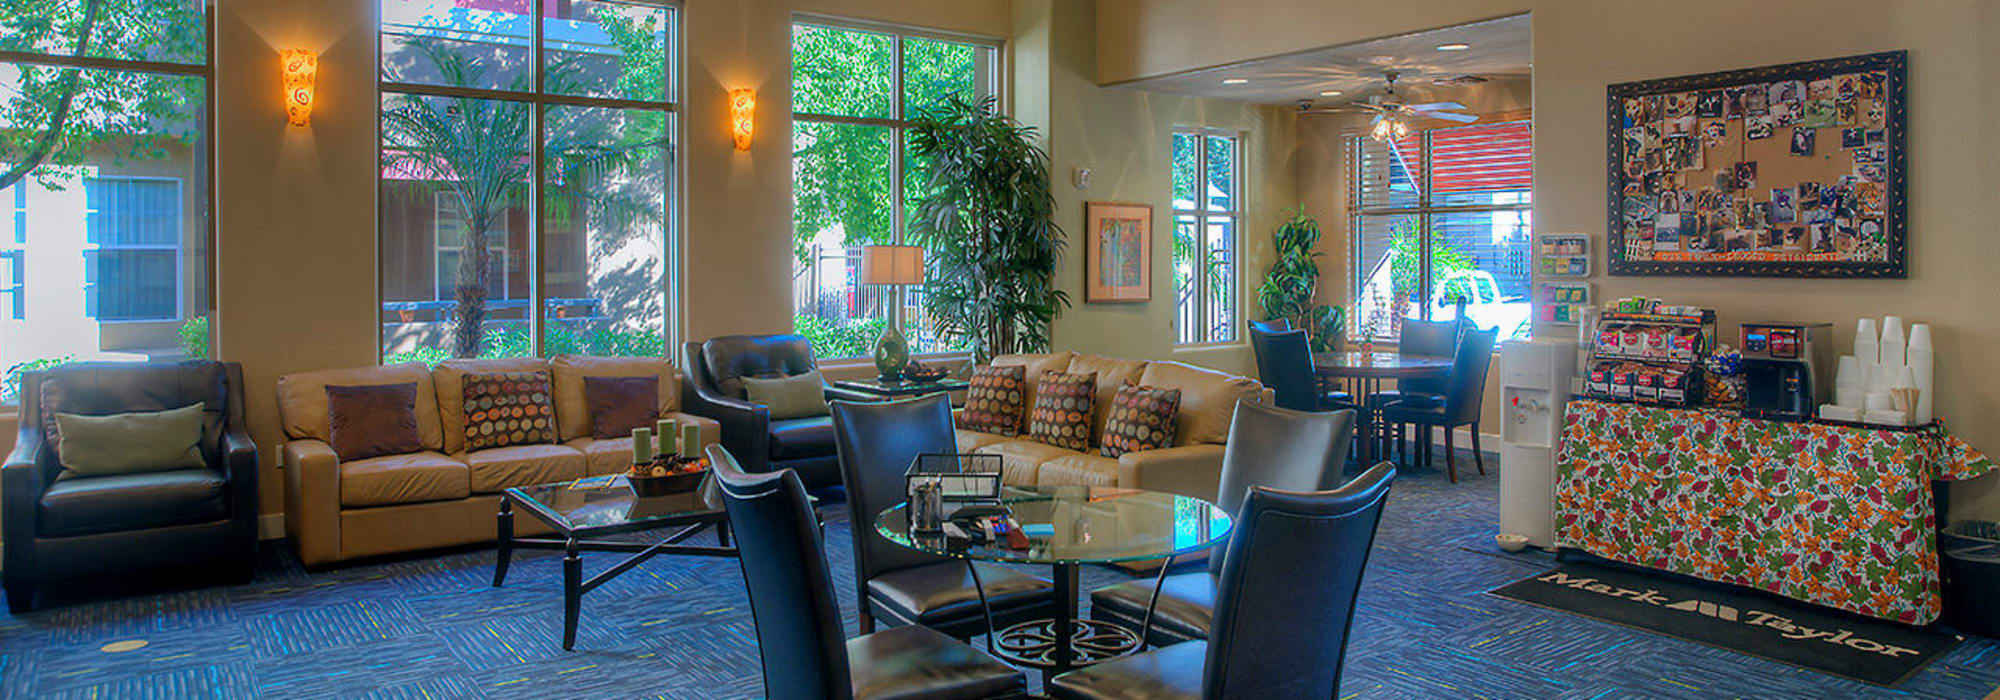 Resident clubhouse with tables and couches to entertain friends at Park on Bell in Phoenix, Arizona